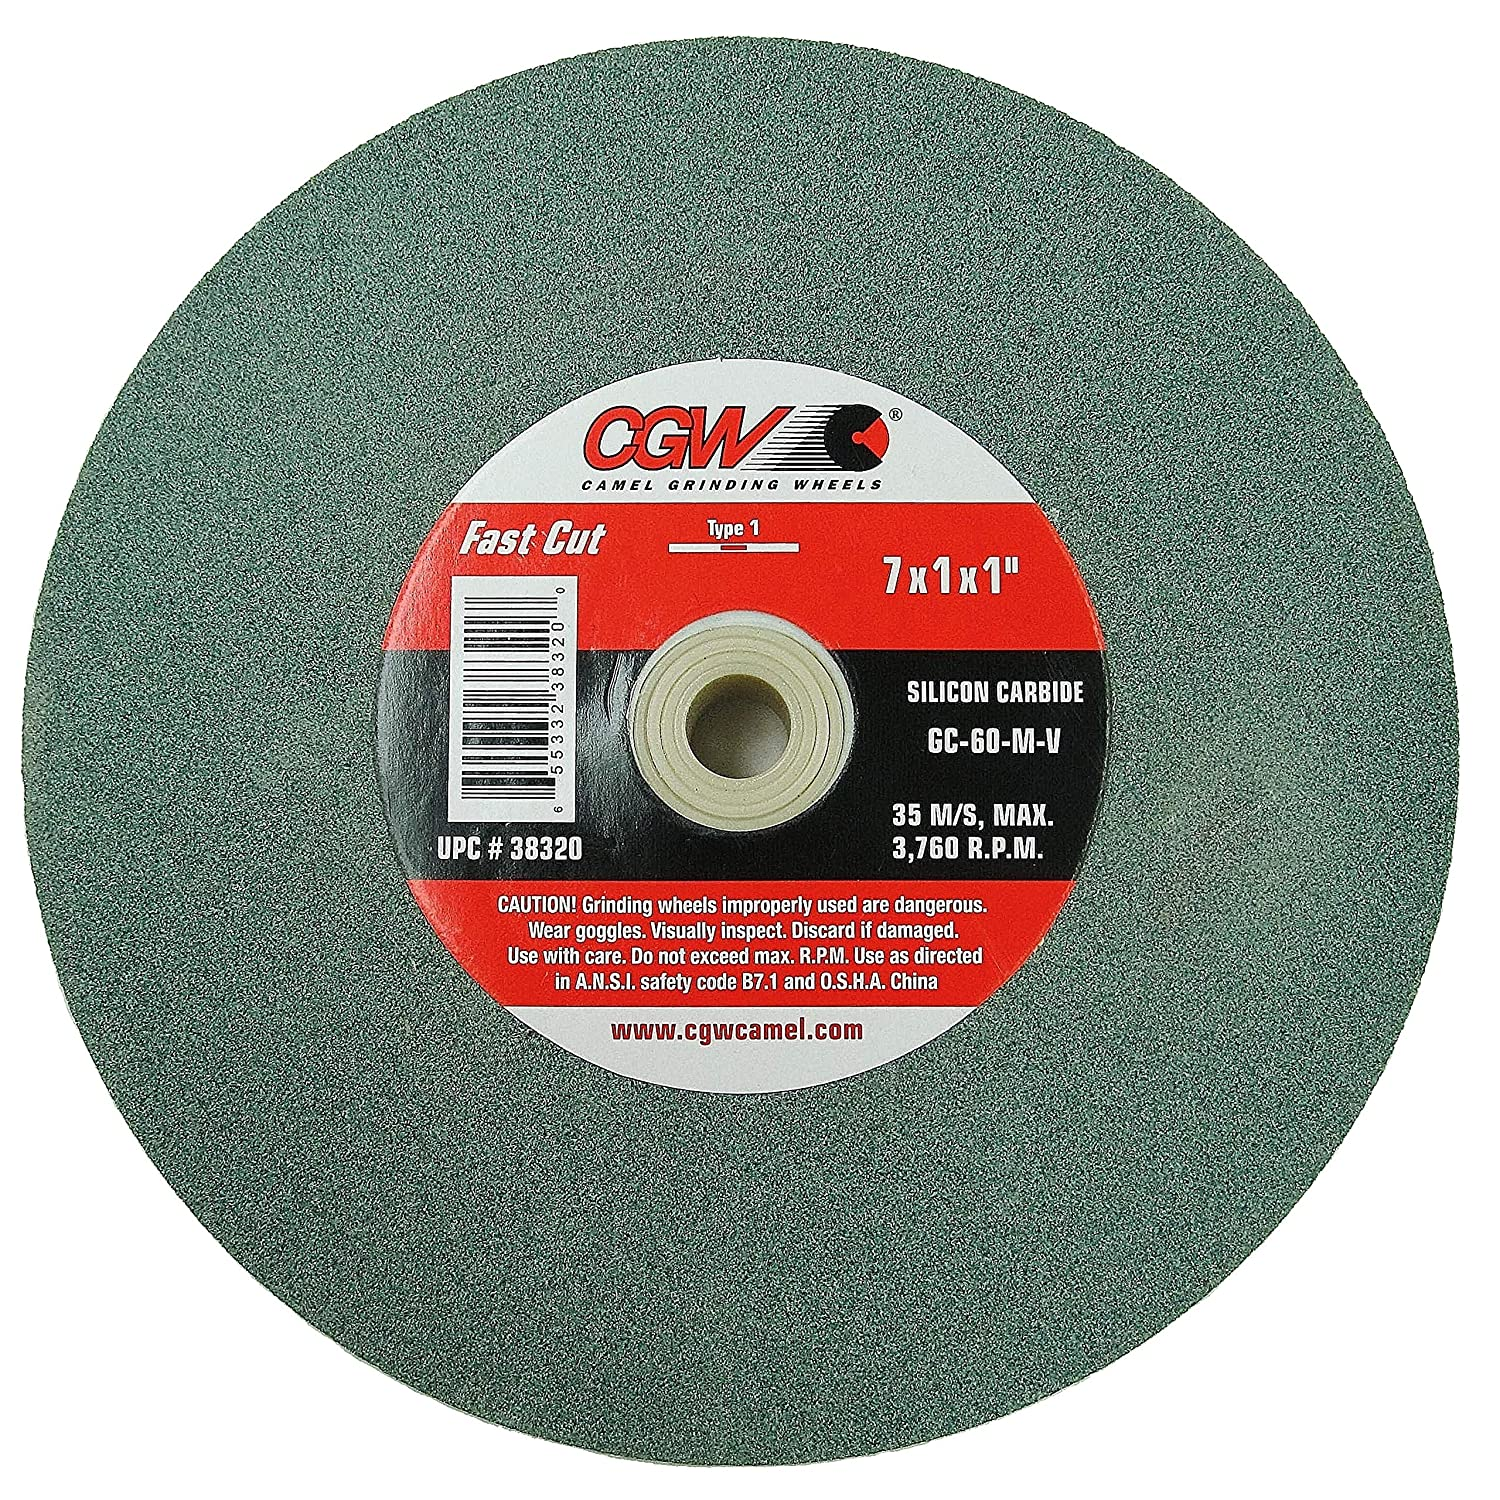 CGW 7 X 1 X 1 Bench Grinder Green Silicon Carbide Grinding Wheel Grit-60 Single Pack Part #38320